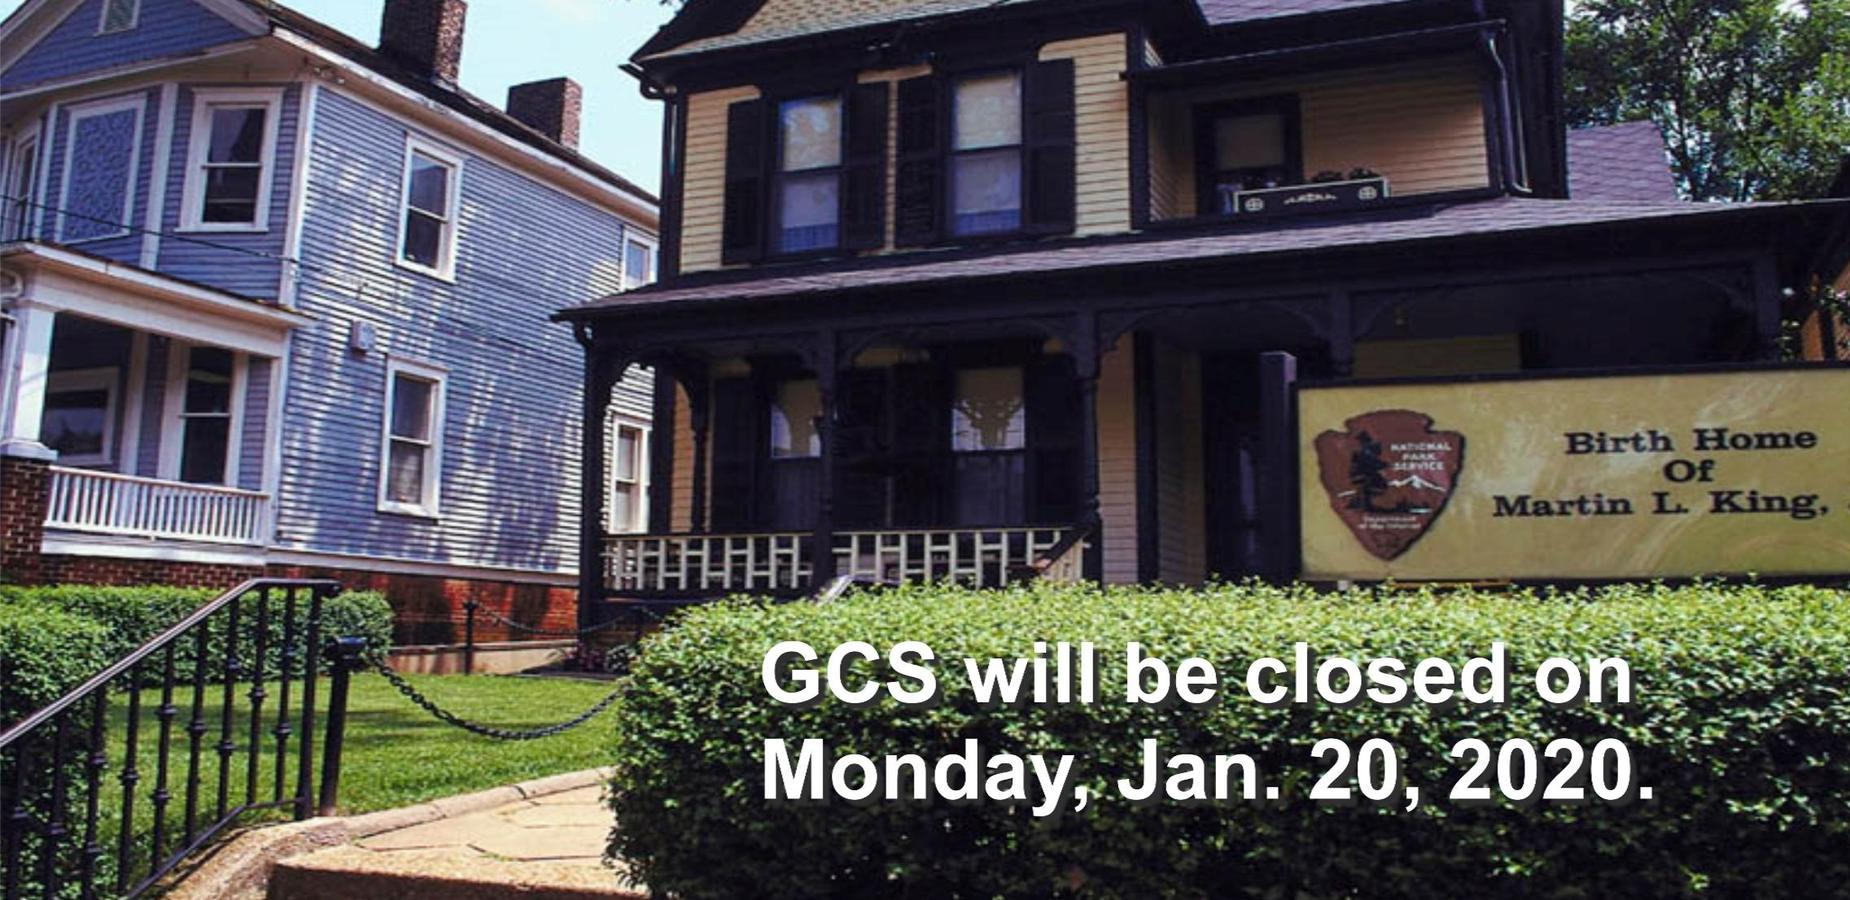 GCS Closed for MLK Day on Jan. 20th